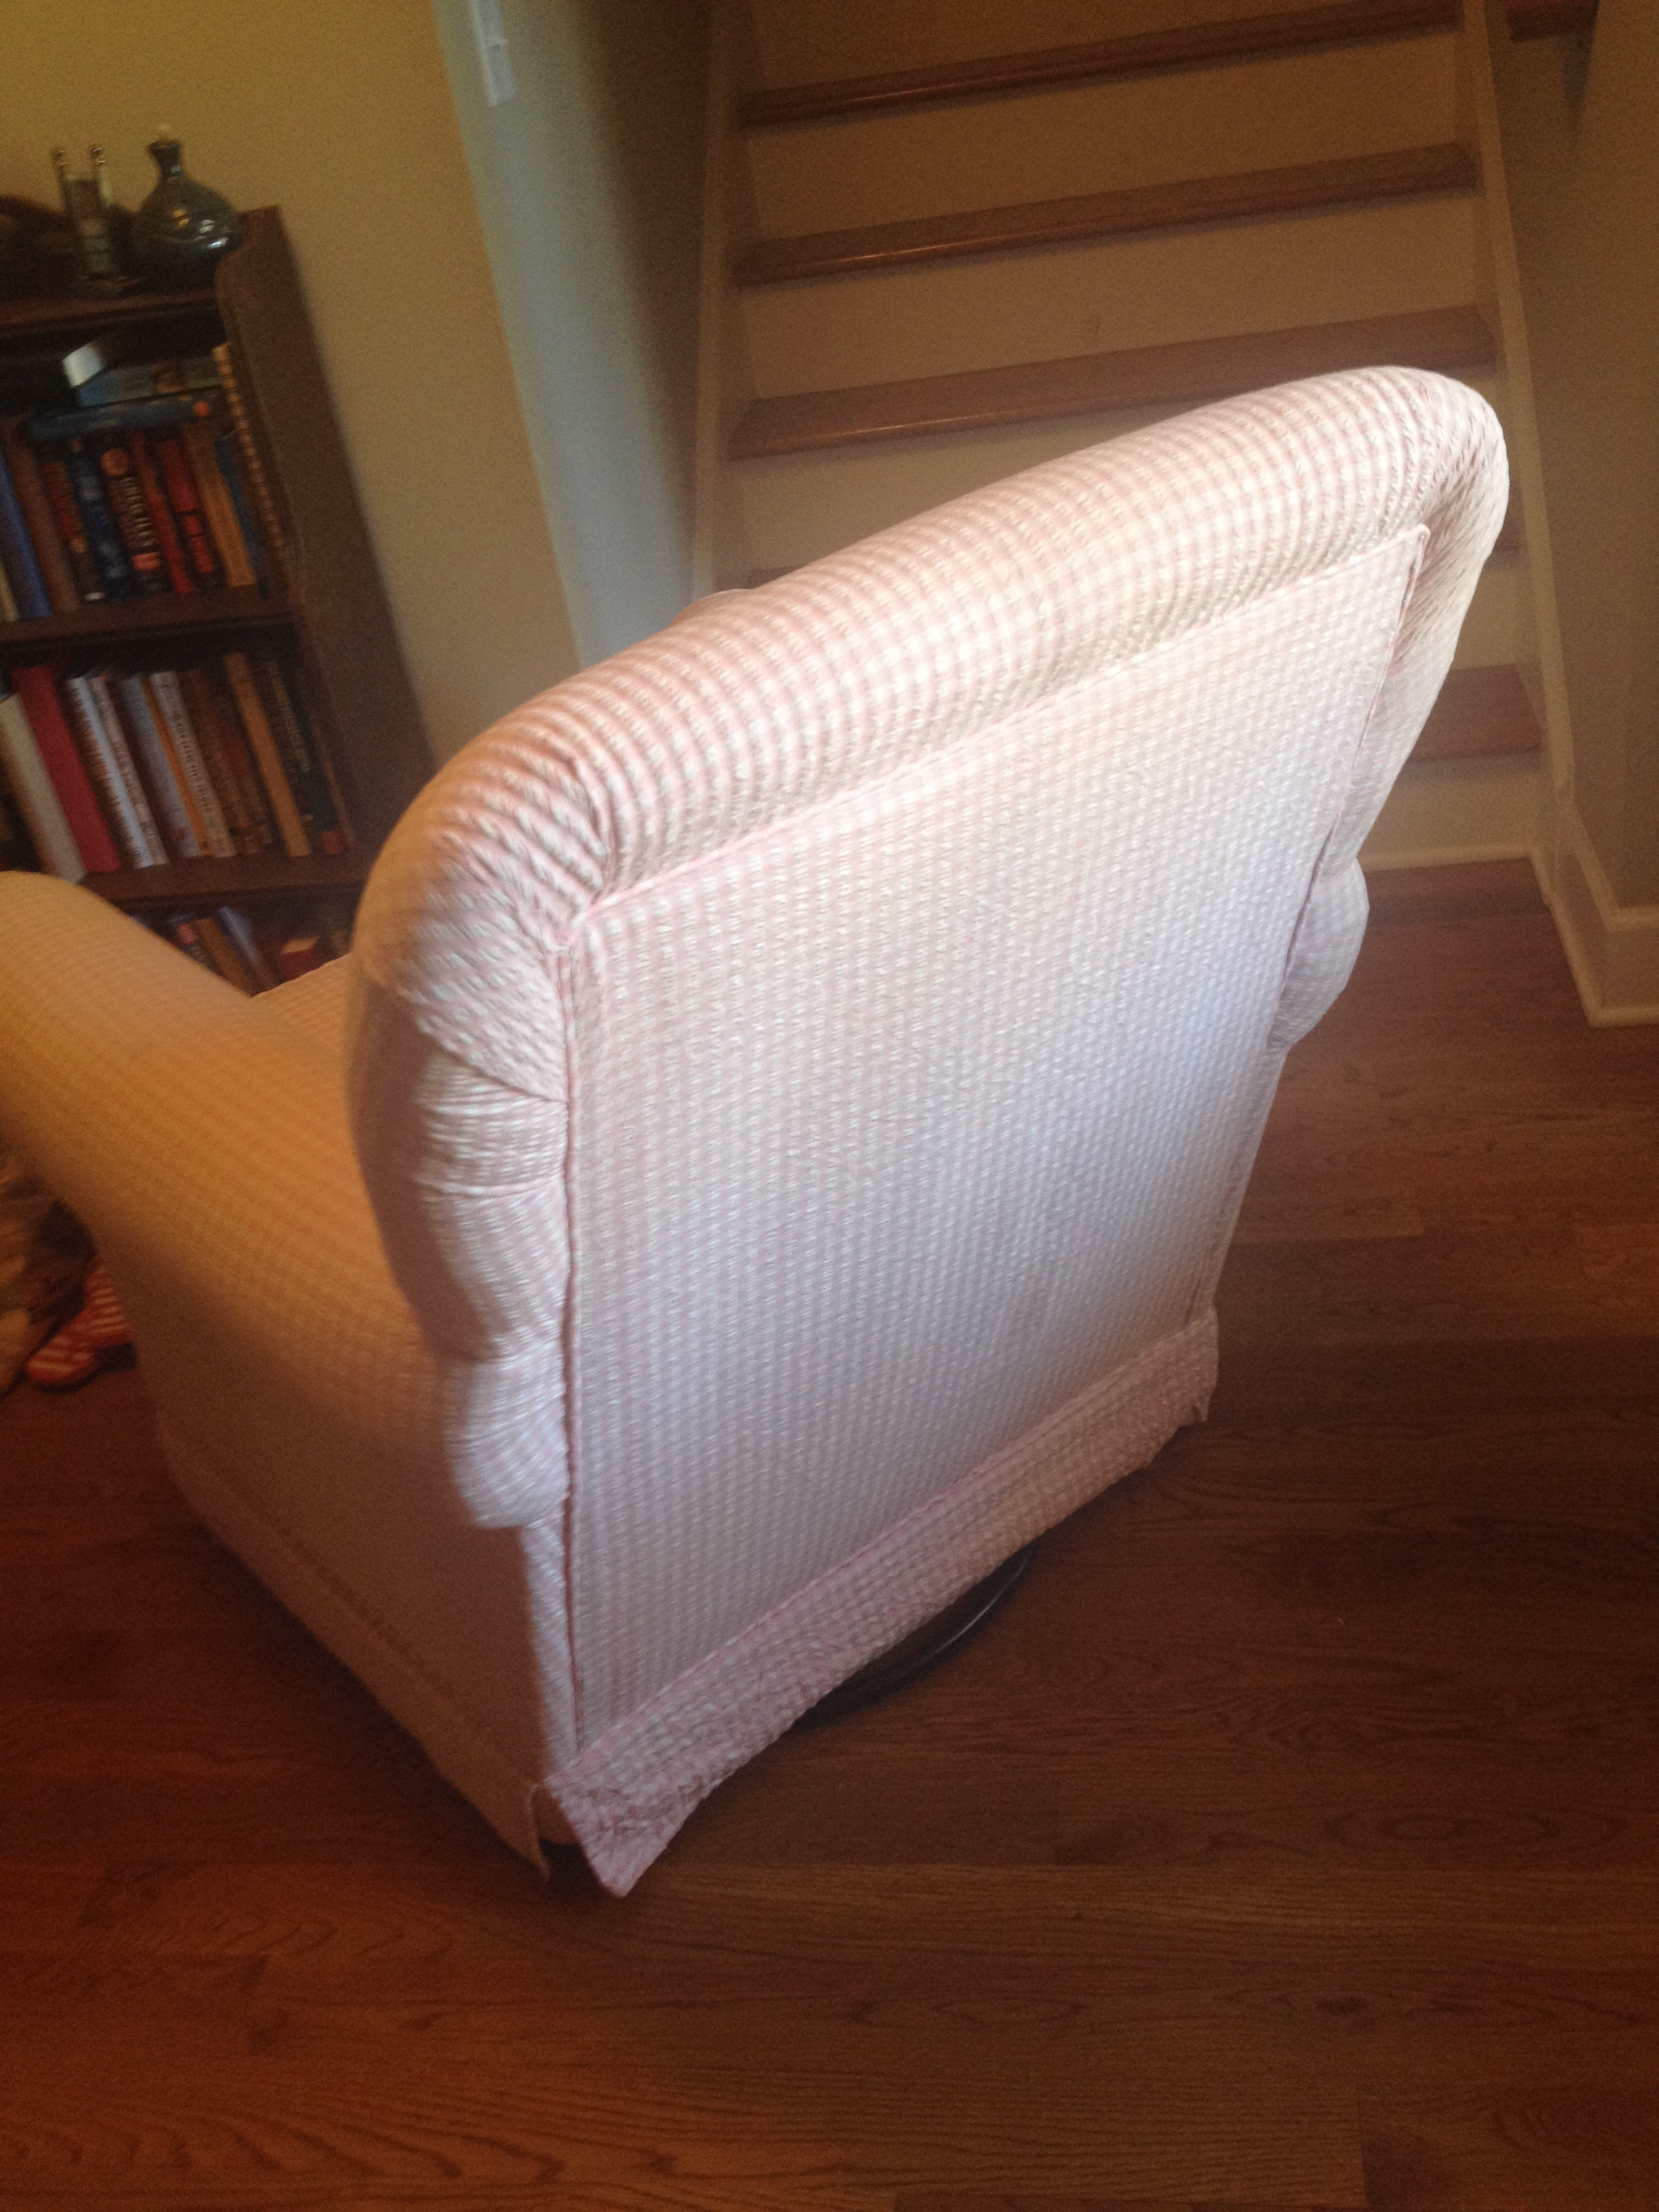 Superb For Sale Upholstered Pink Gingham Swivel Glider Chair Lamtechconsult Wood Chair Design Ideas Lamtechconsultcom